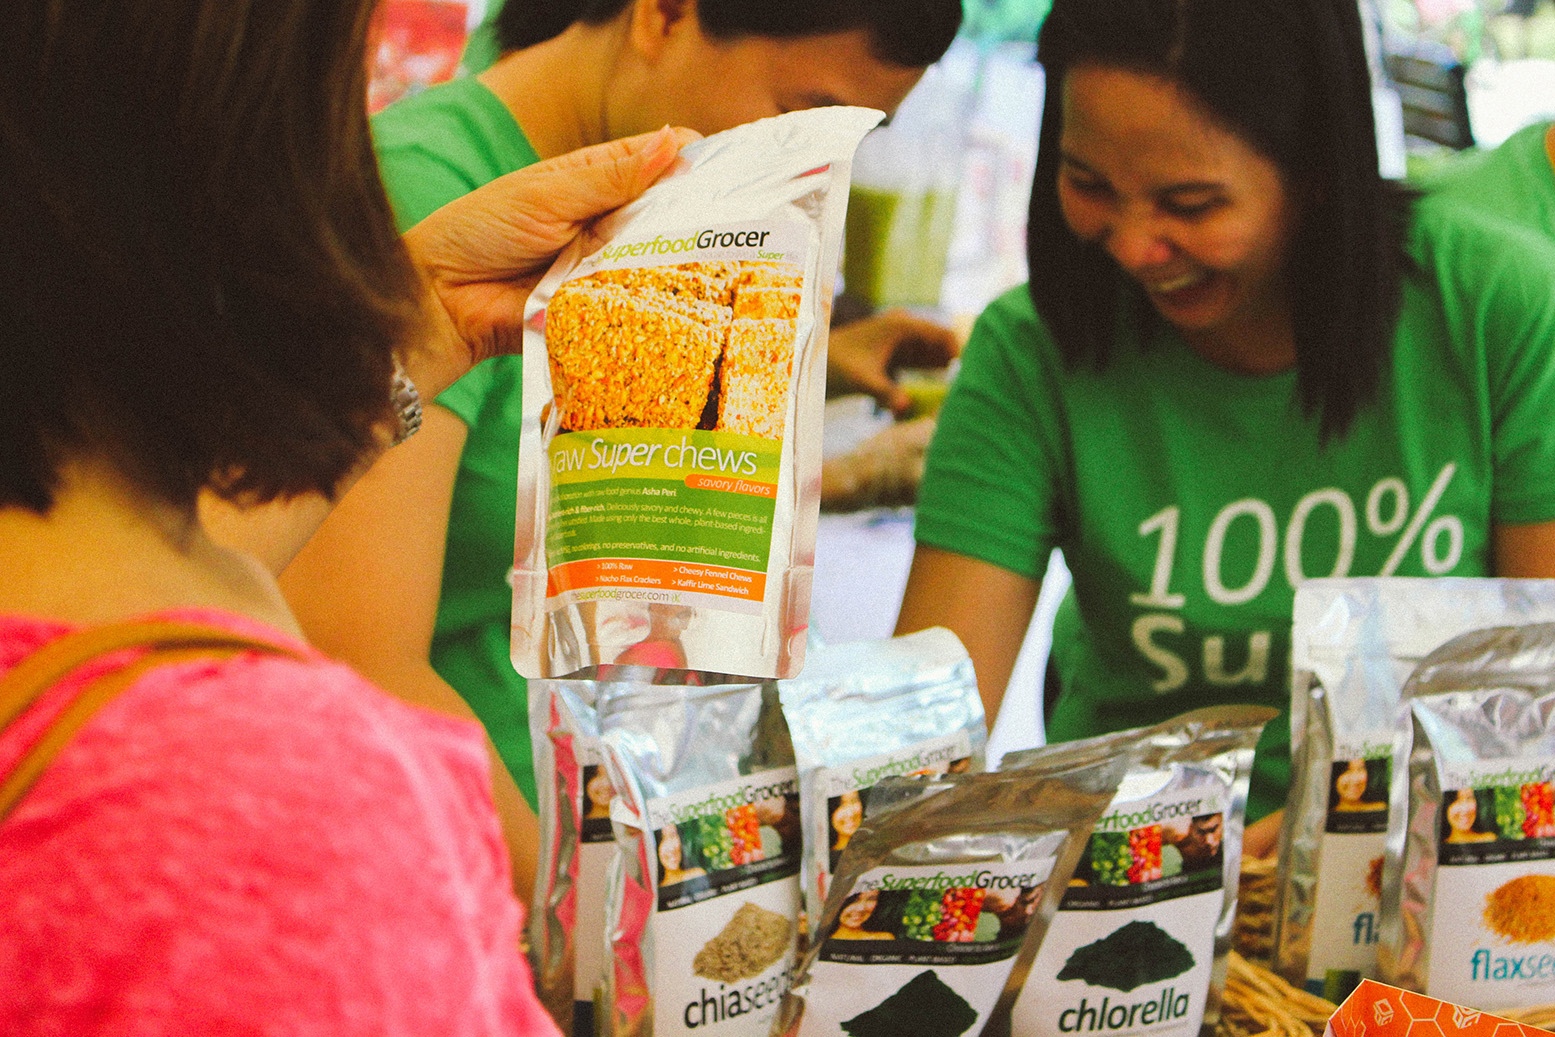 HELPING PEOPLE. u201cWhen we started The Superfood Grocer, setting up a business was interestingly not our primary objective. Rather, we saw a genuine need that was close to us and we passionately wanted to address this and reach (and hopefully help) as many people as we can,u201d Carmela Cancio says